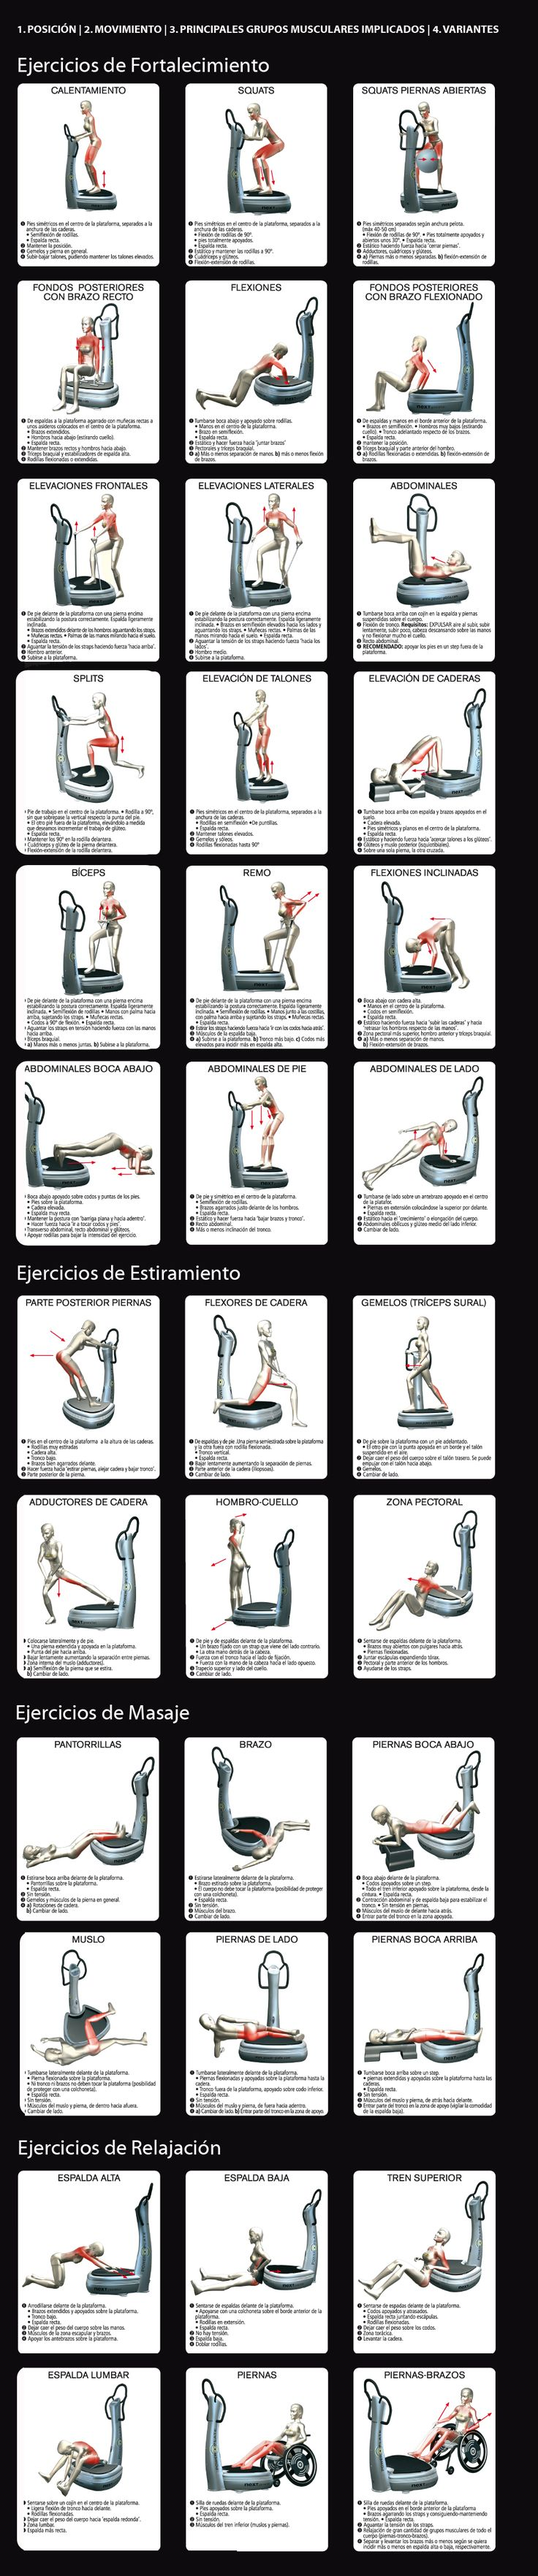 9 best images about power plate on pinterest the challenge free workout videos and to tell. Black Bedroom Furniture Sets. Home Design Ideas